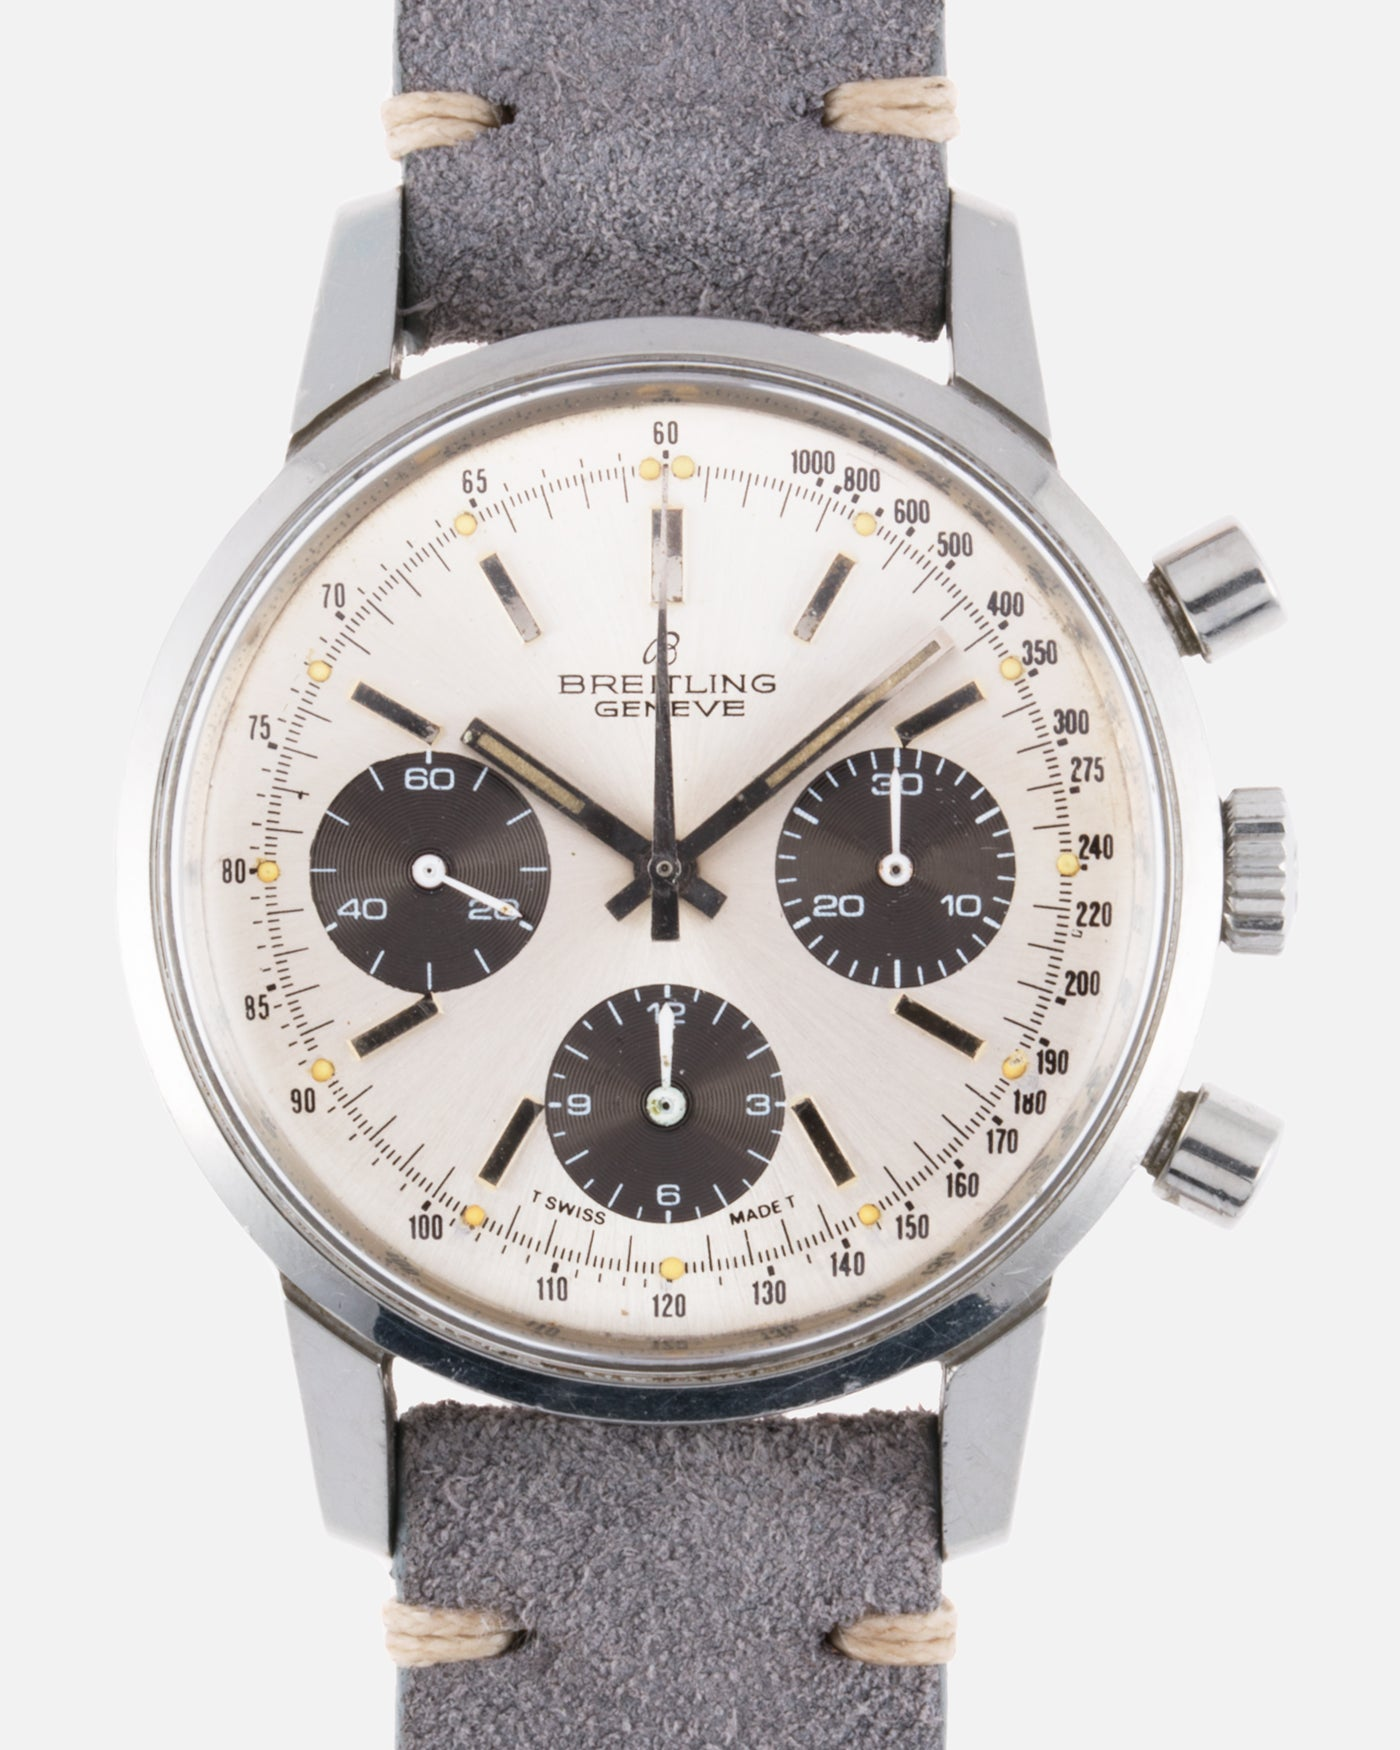 Breitling 'Long Playing' 815